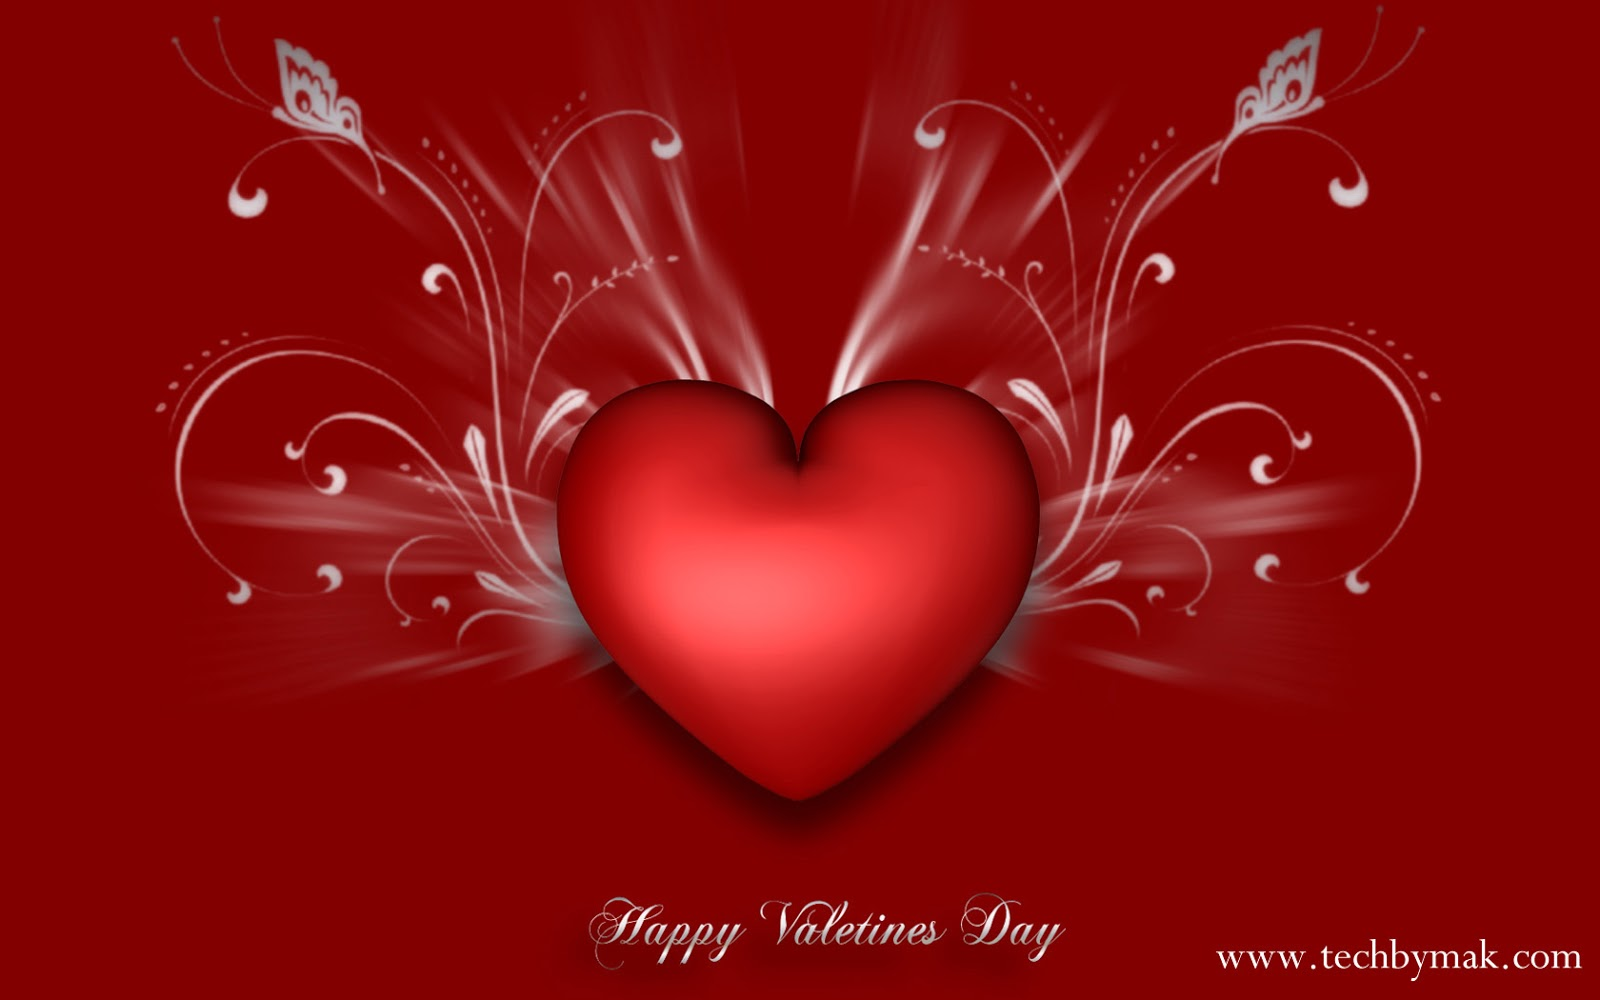 Valentines day hearts hd wallpapers pictures photos 2016 - Best heart wallpaper hd ...